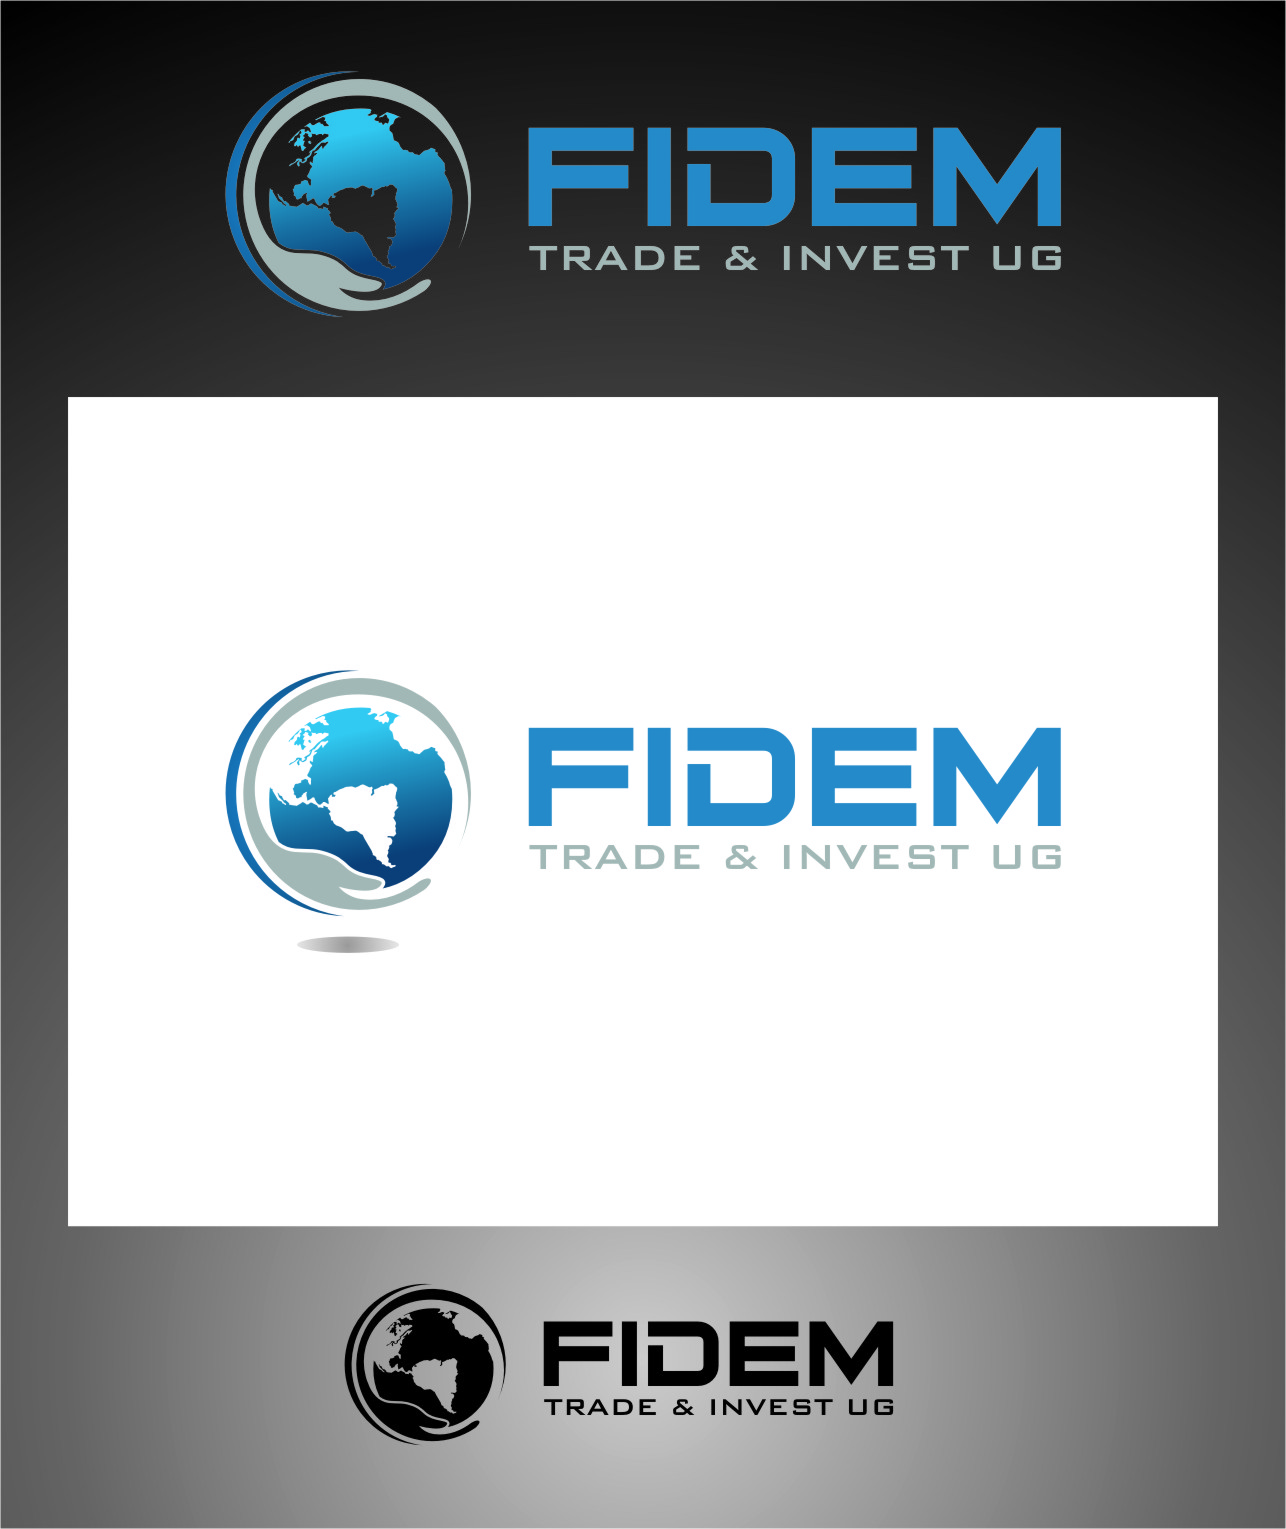 Logo Design by Ngepet_art - Entry No. 420 in the Logo Design Contest Professional Logo Design for FIDEM Trade & Invest UG.